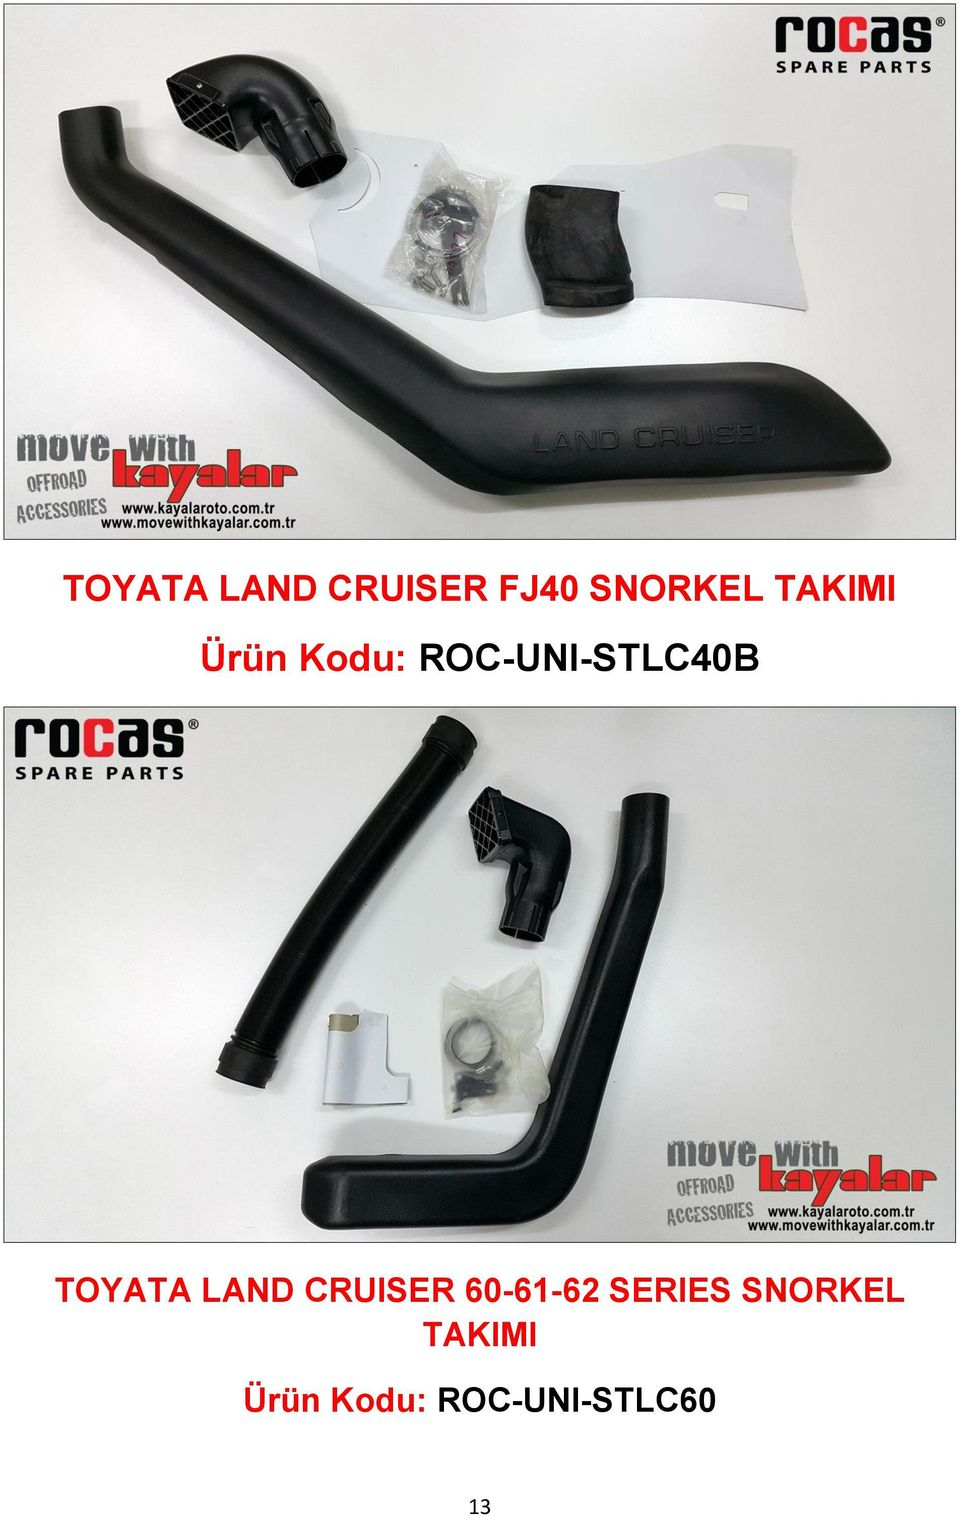 TOYATA LAND CRUISER 60-61-62 SERIES